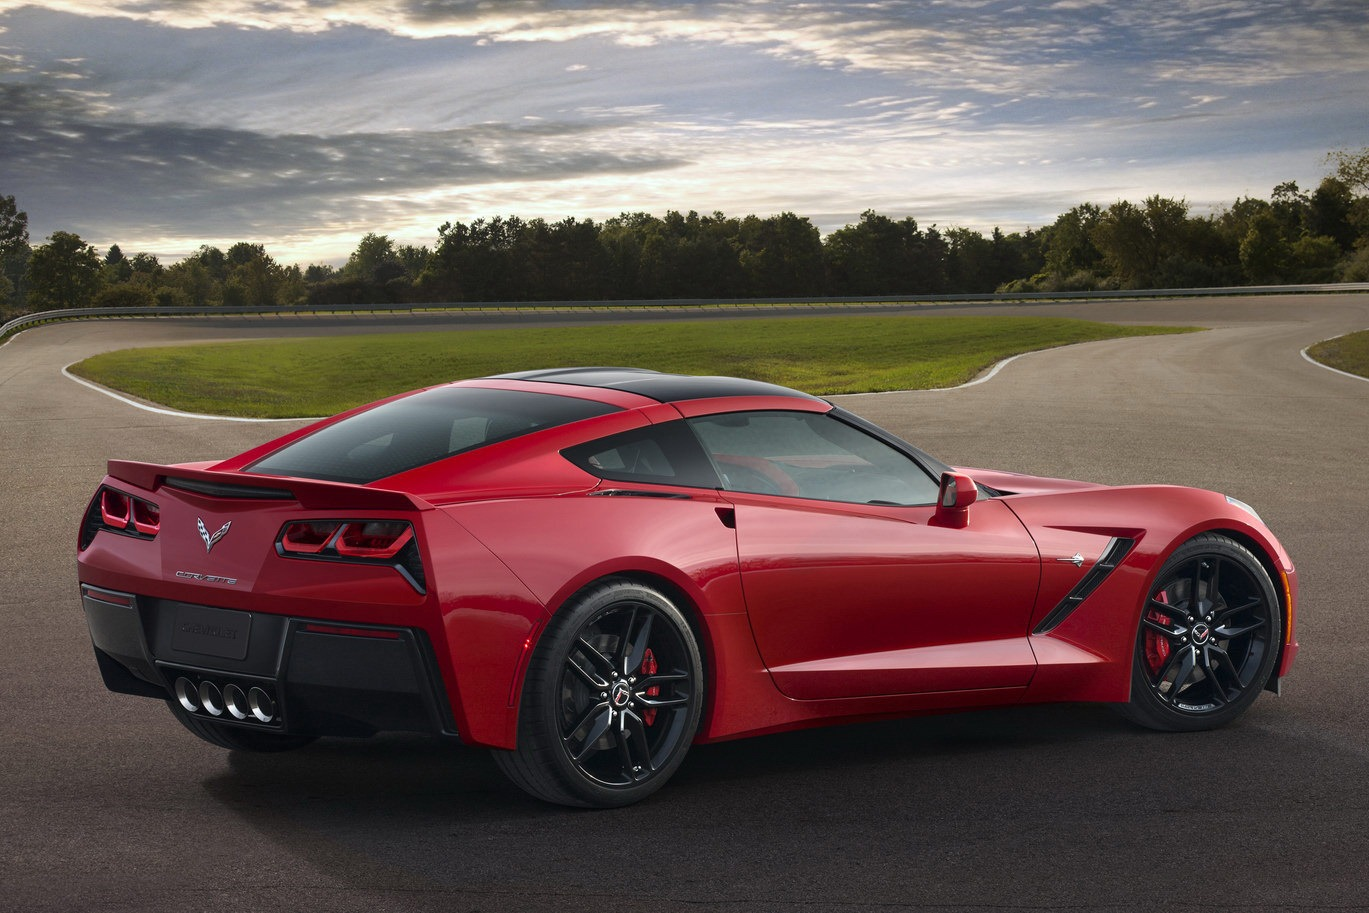 chevrolet corvette c7 stingray sports cars. Black Bedroom Furniture Sets. Home Design Ideas